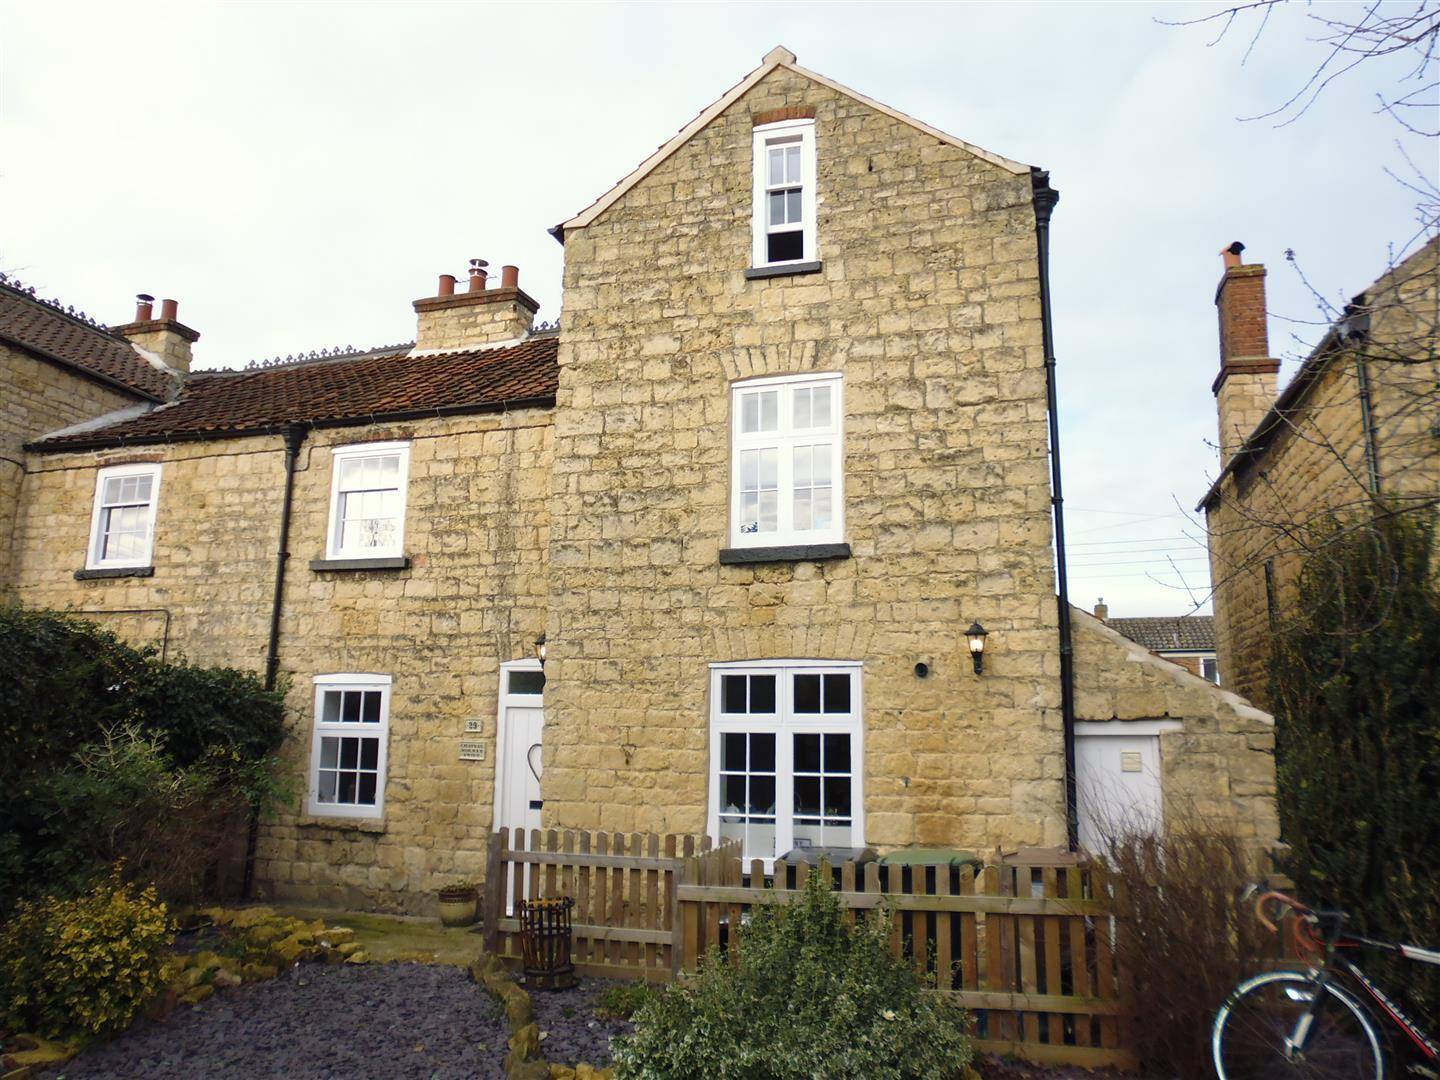 2 Bedrooms Terraced House for sale in Silver Street, Branston, Lincoln